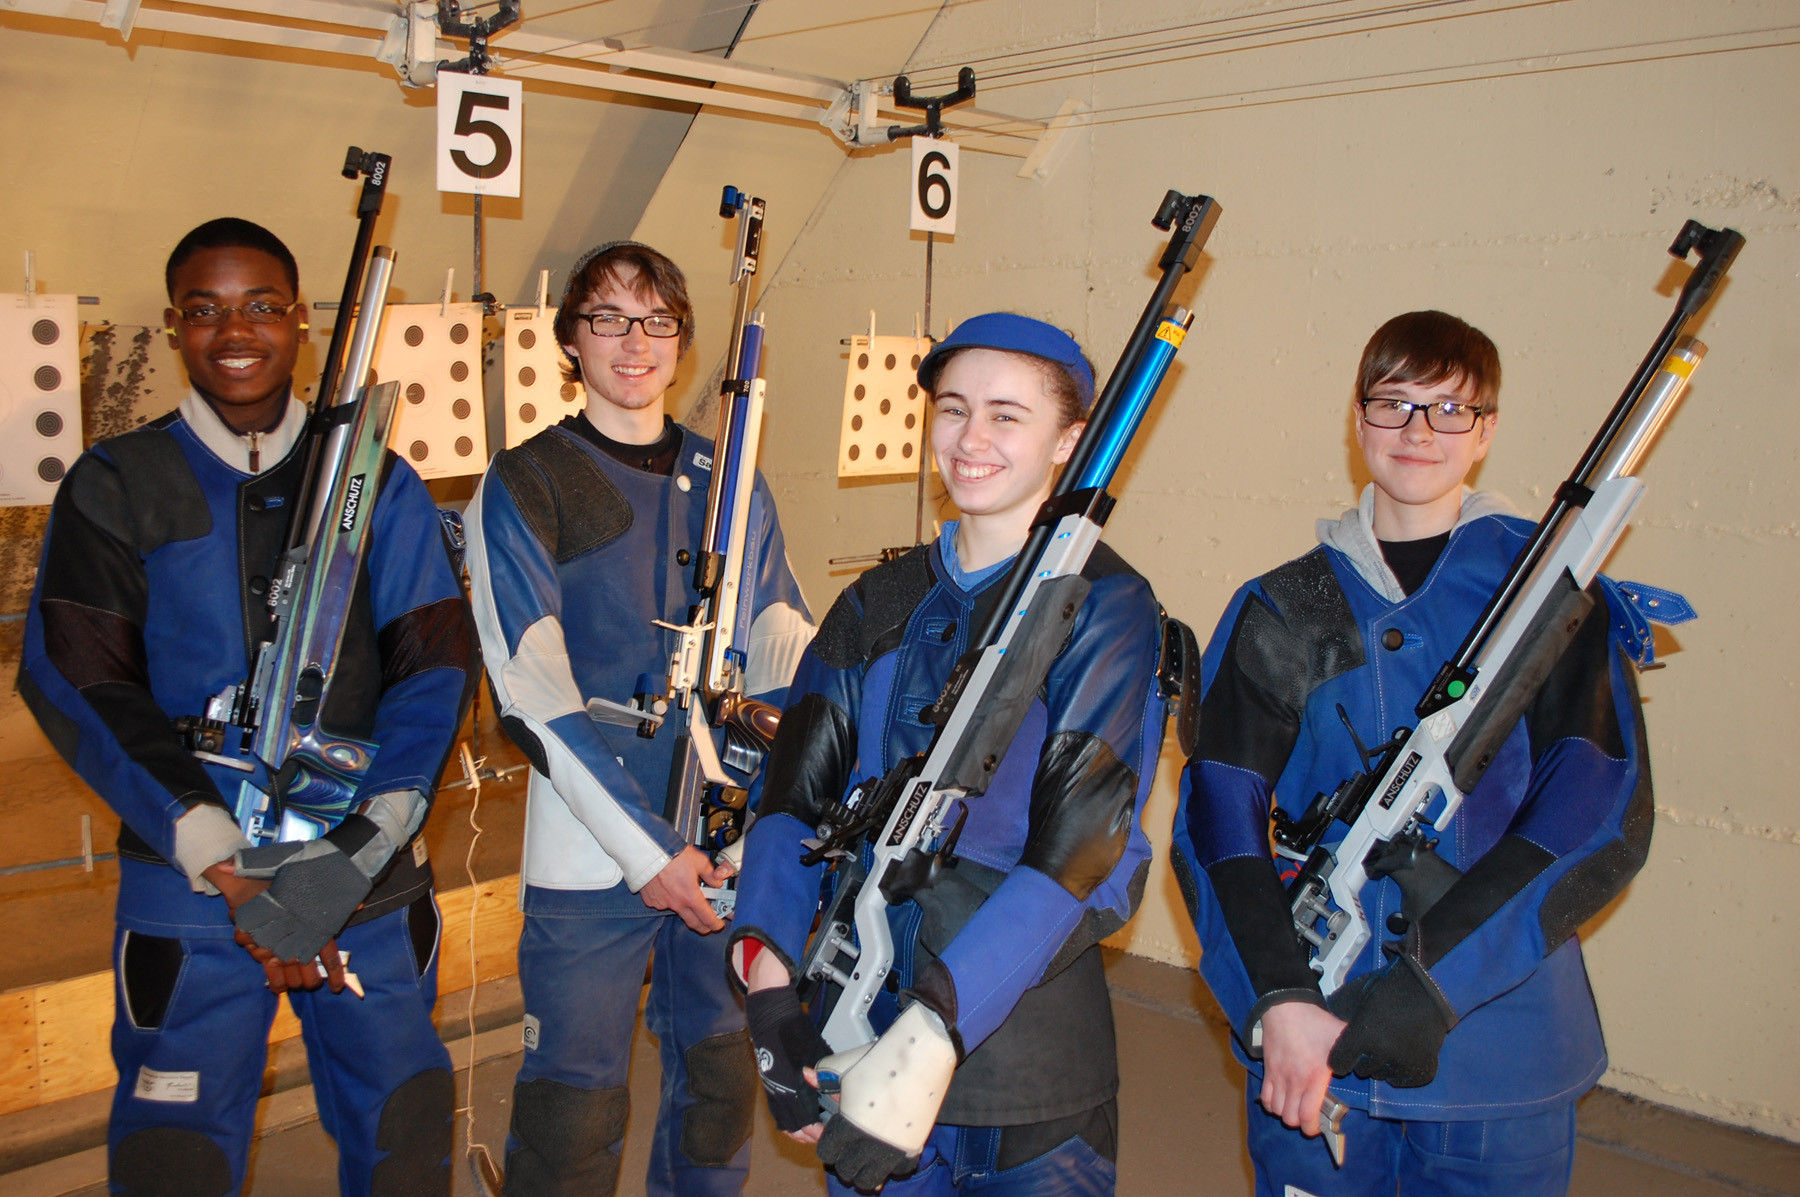 Members of the Valley Stream Central High School District varsity rifle team, from left, Jurell Wilson, Sean Wraith, Danielle Cuomo and Kristen Mantel brought home a state title in air rifle.